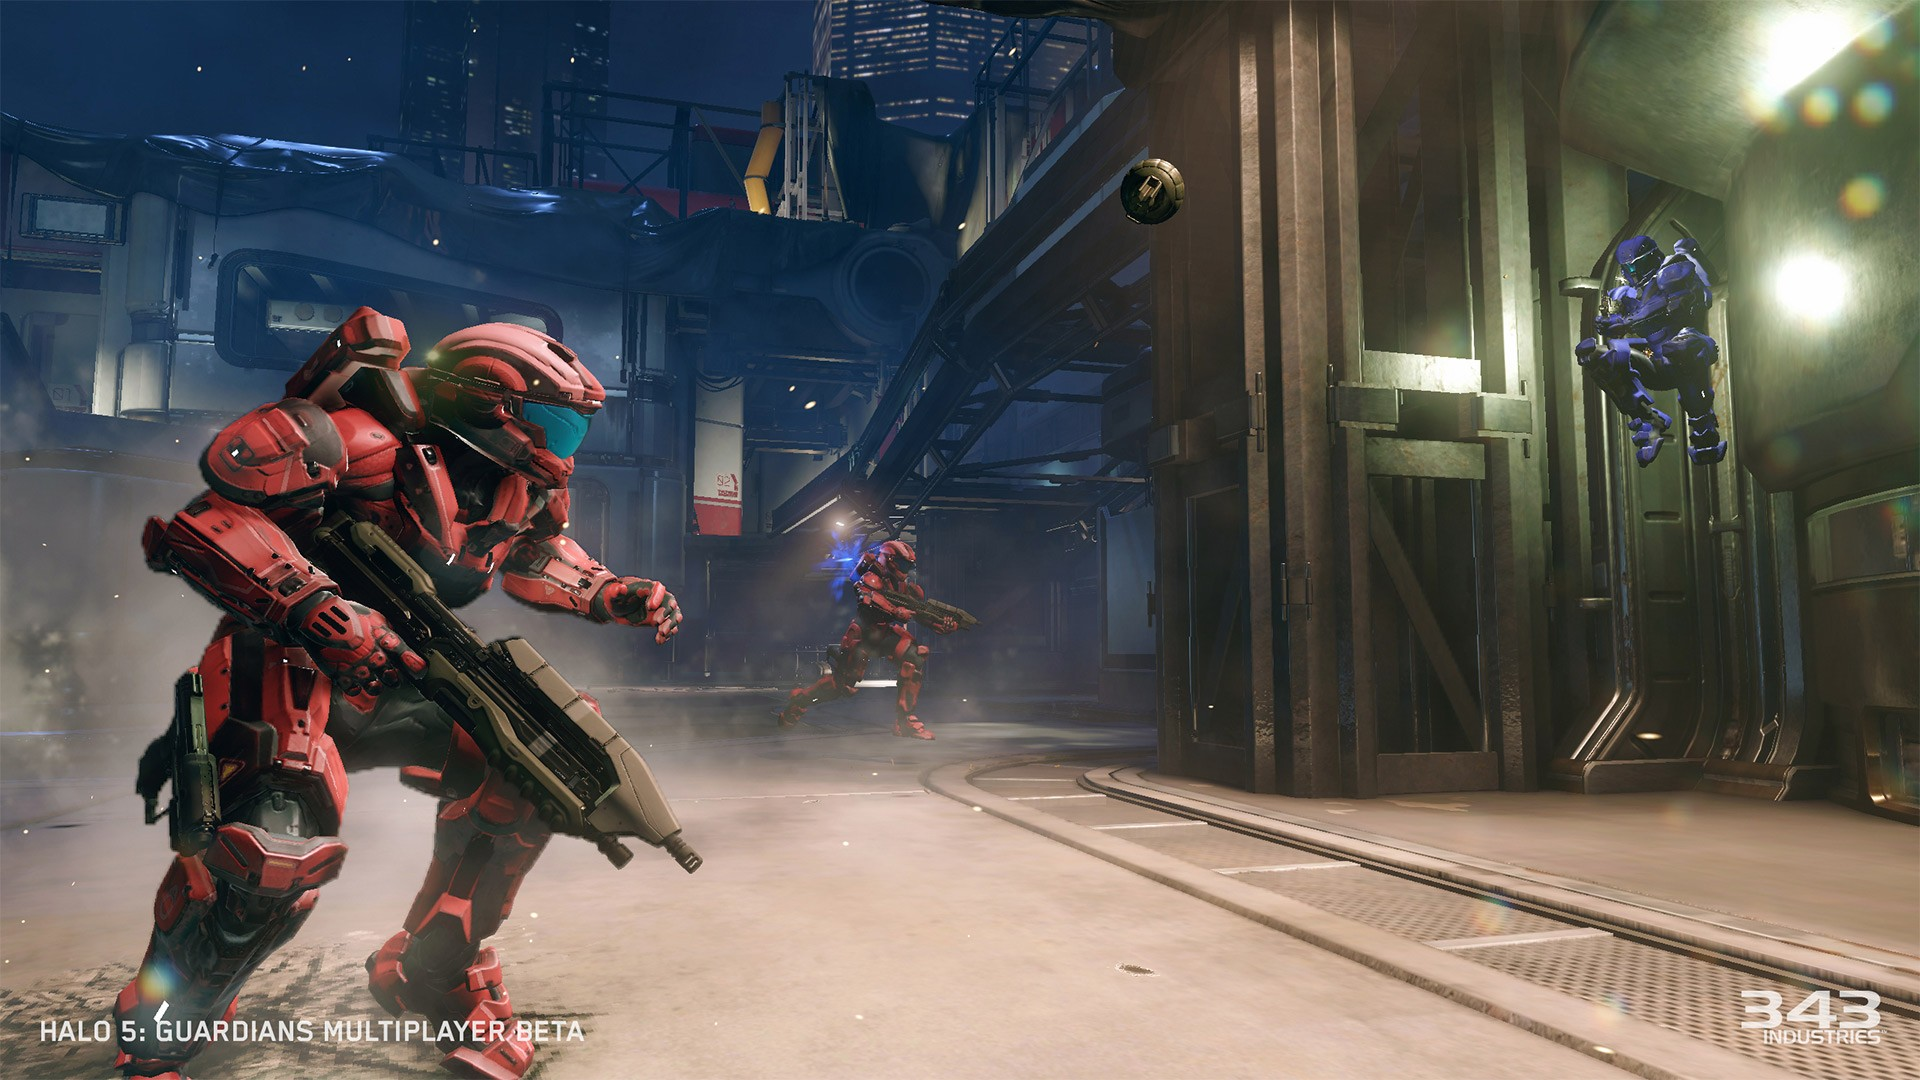 Halo 5: Guardians Multiplayer Beta Gets Updated with New Maps, Modes